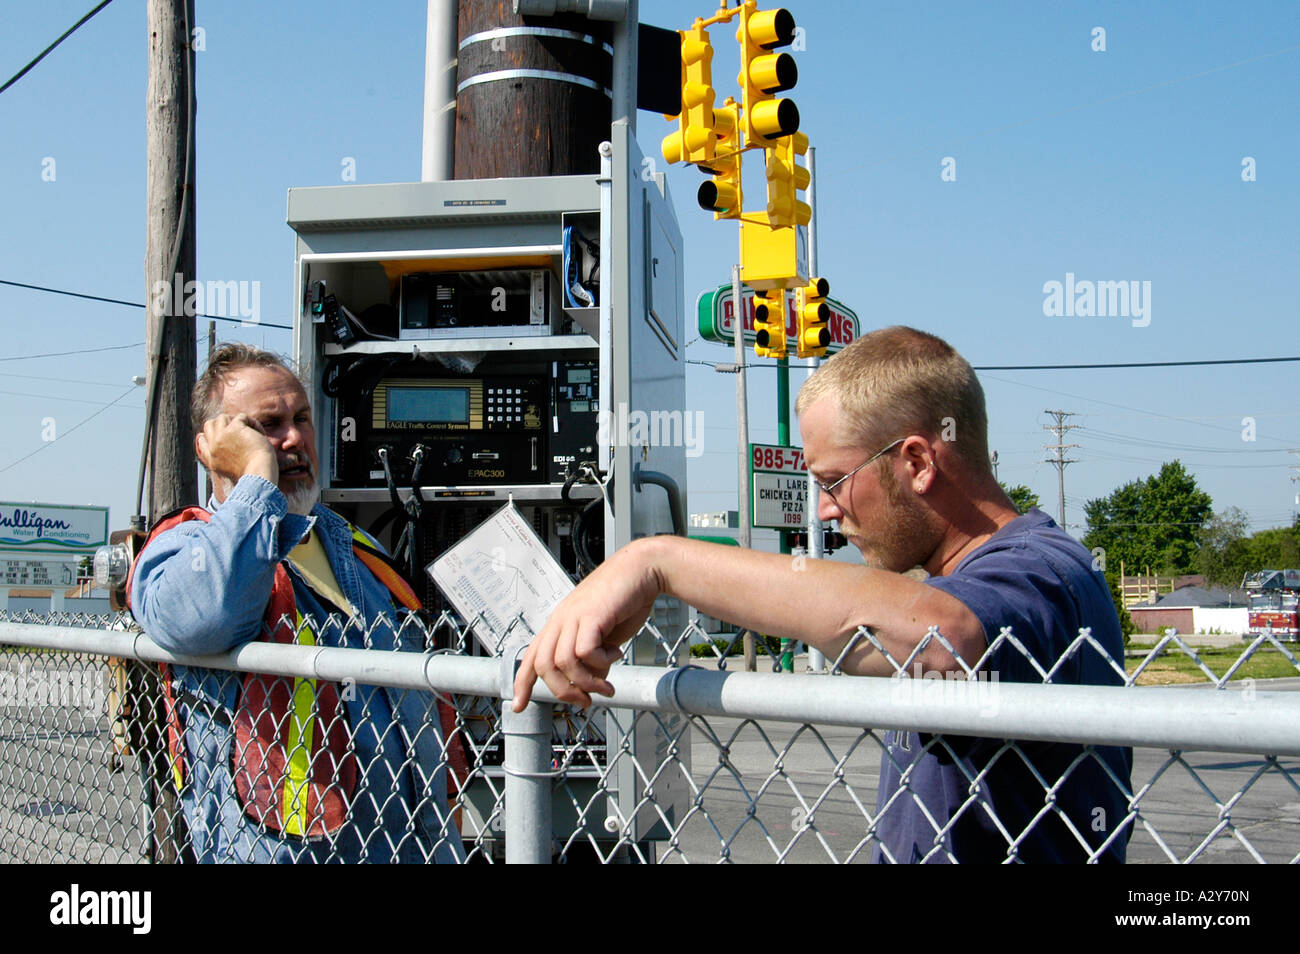 Adult male telephone technician works on a communications problem outside - Stock Image